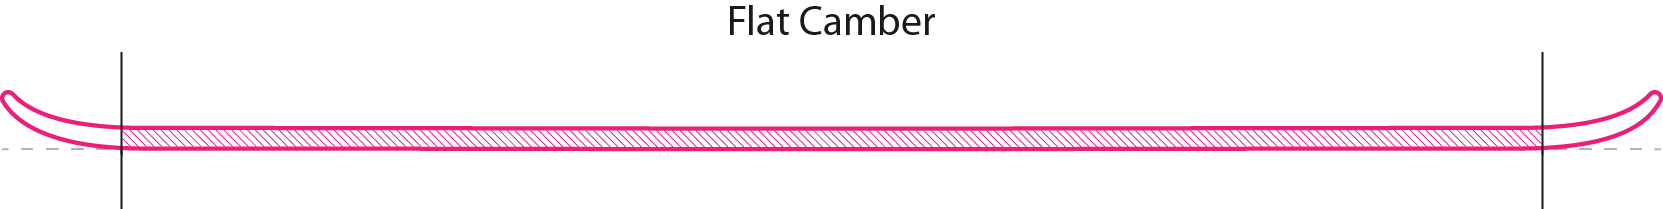 Flat Camber